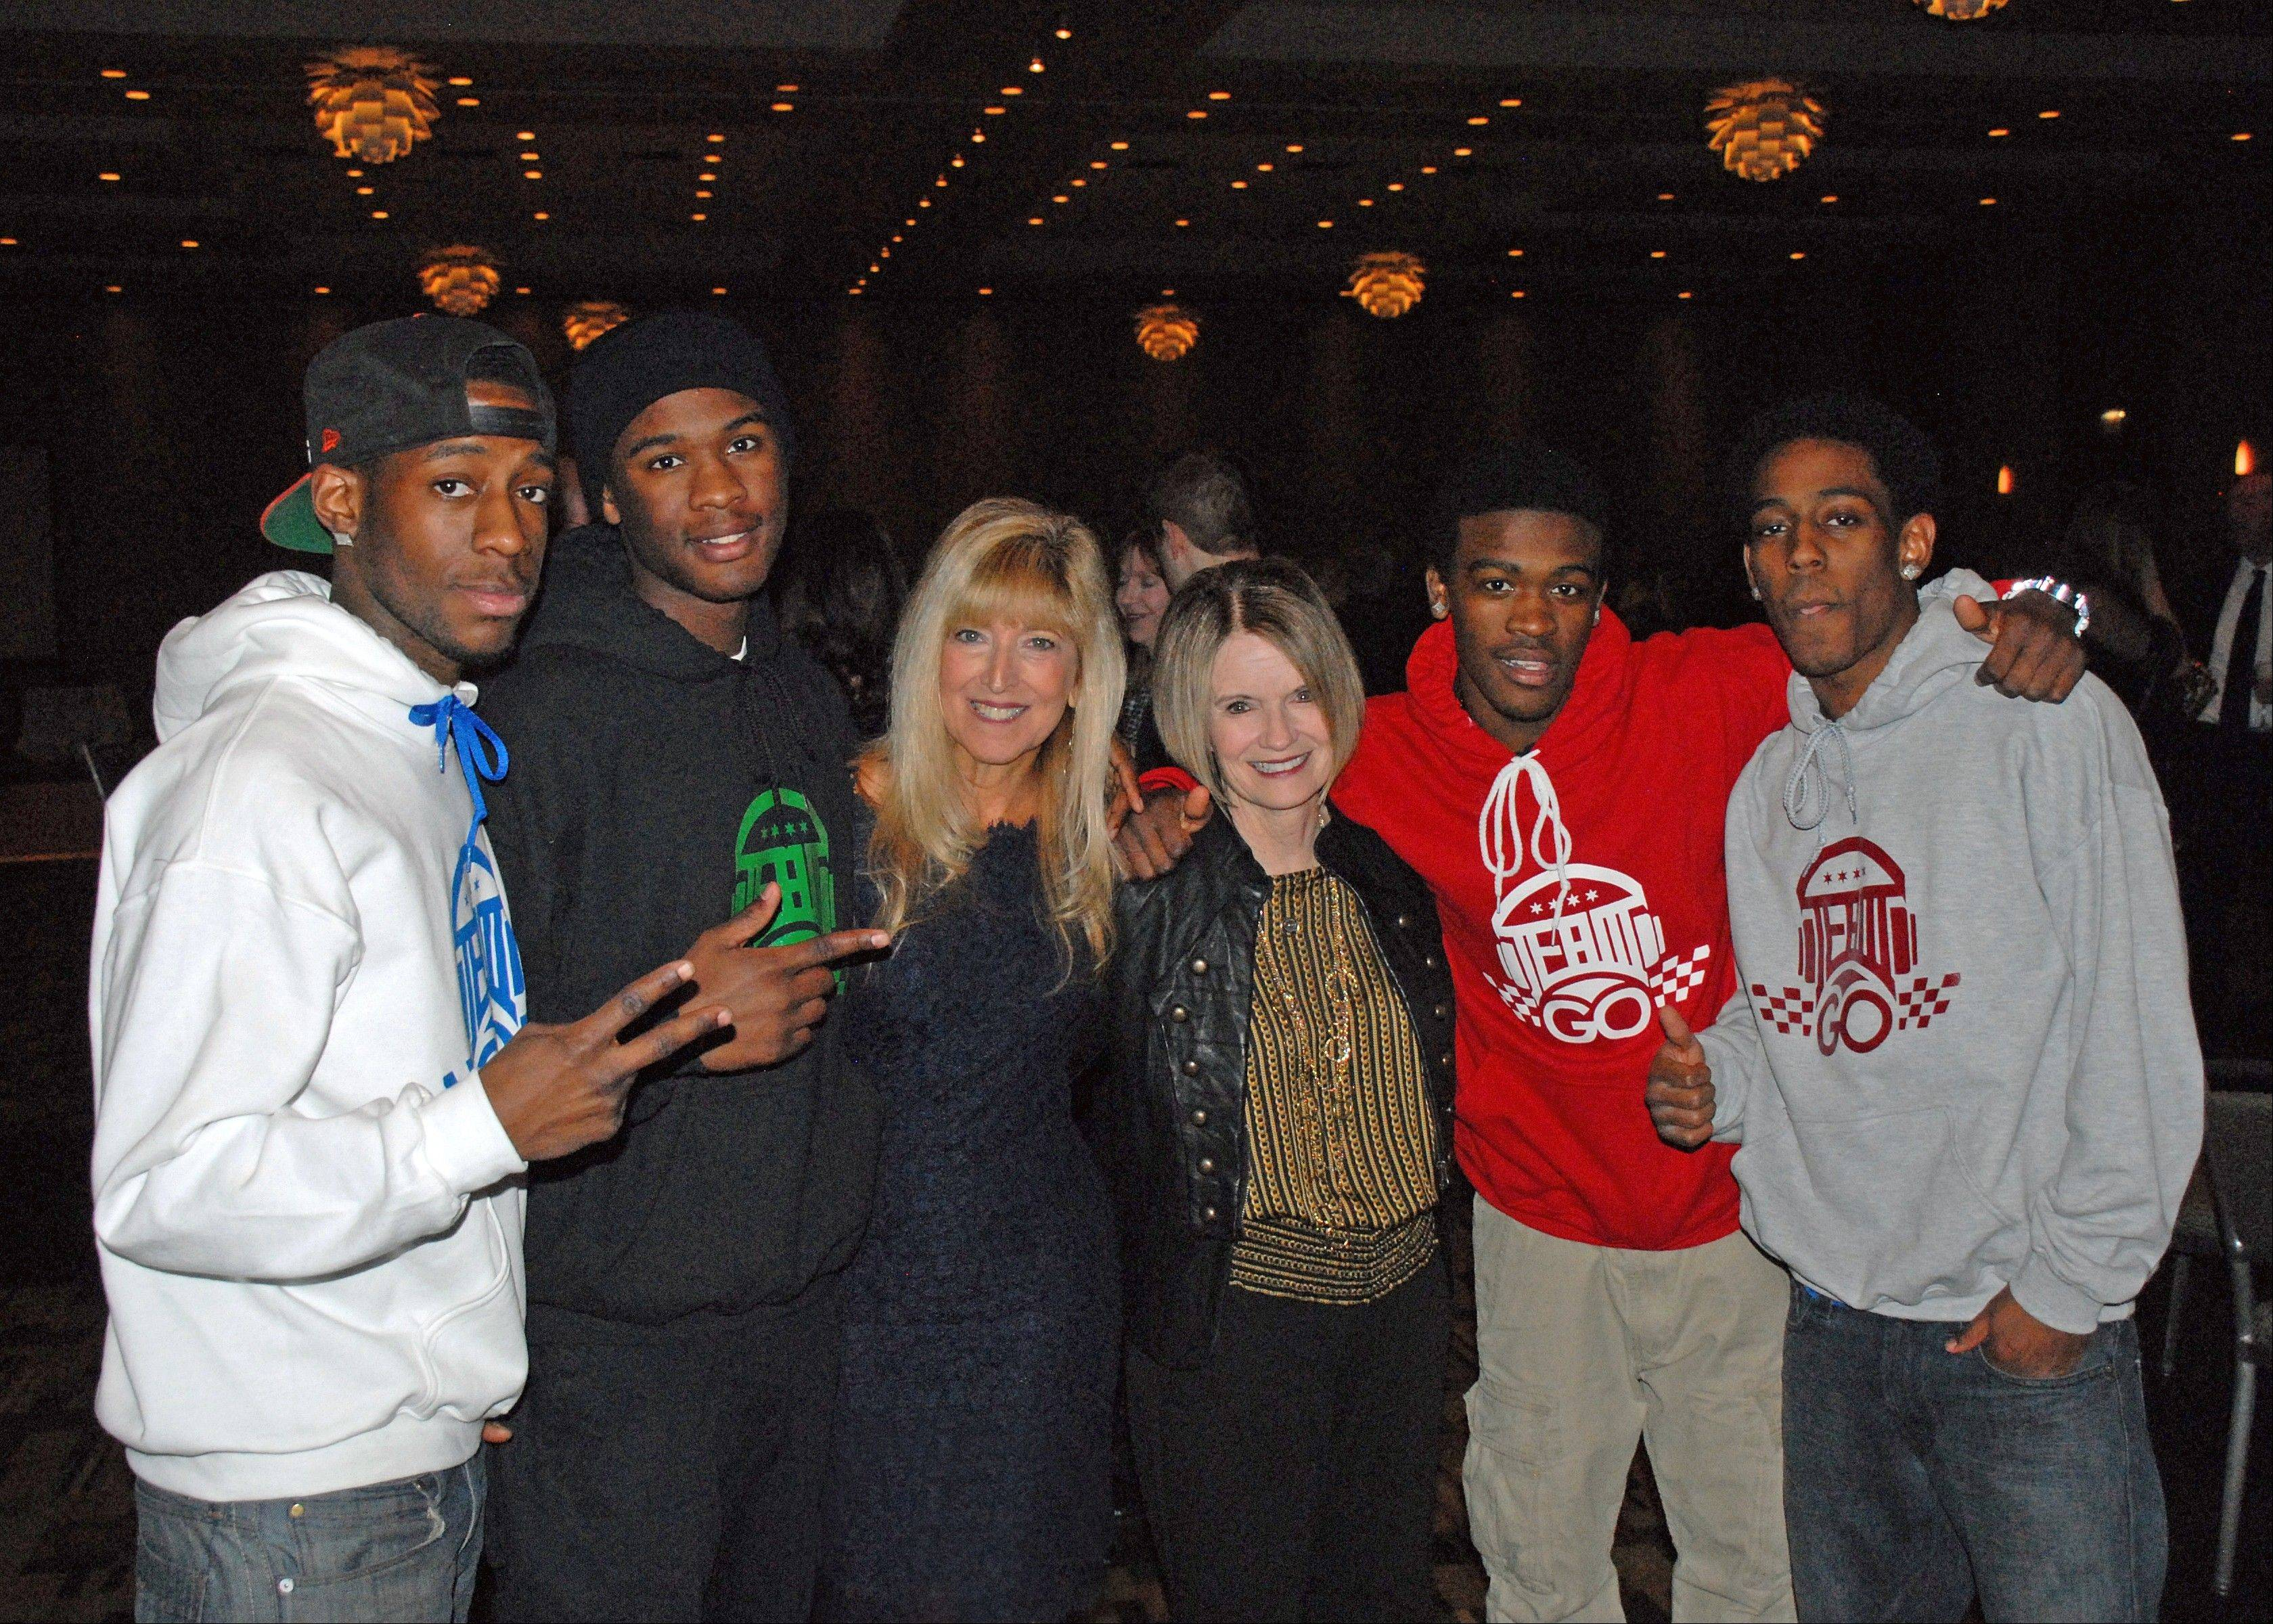 The rap group TeamGo! takes a break from their performance at a recent CASA Lake County Volunteer Appreciation Dinner to join CASA Executive Director Terri Zenner Greenberg, left, and Juvenile Court Judge Sarah Lessman at a recent Volunteer Appreciation Awards dinner in The Westin Chicago North Shore. TeamGo! was led by a former CASA child who wanted to give back to the organization.